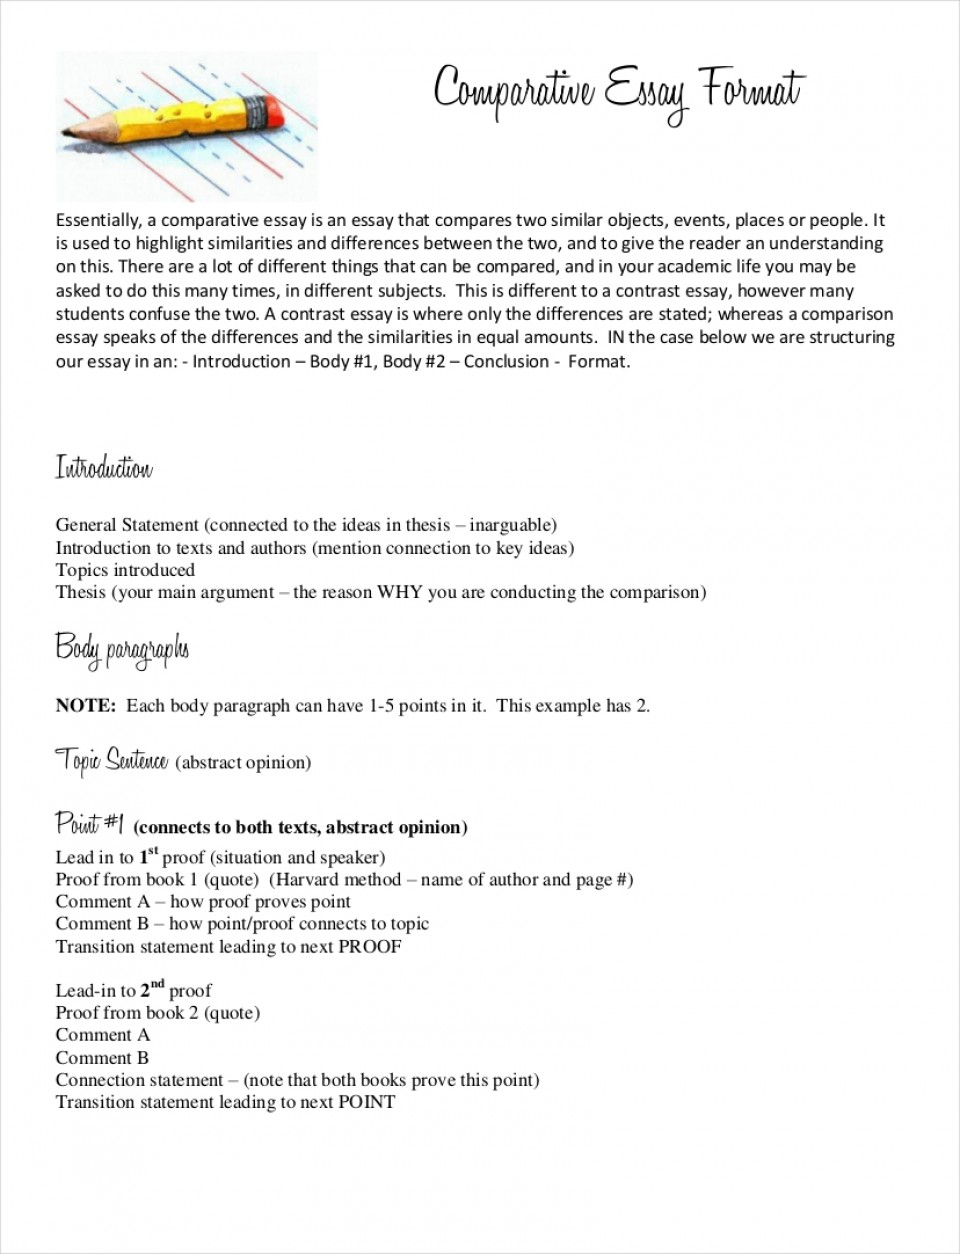 006 Comparative Essay Example Good Cover Letter Samples Sample Pdf Free Format Download W Unique Writing Rubric Structure 960